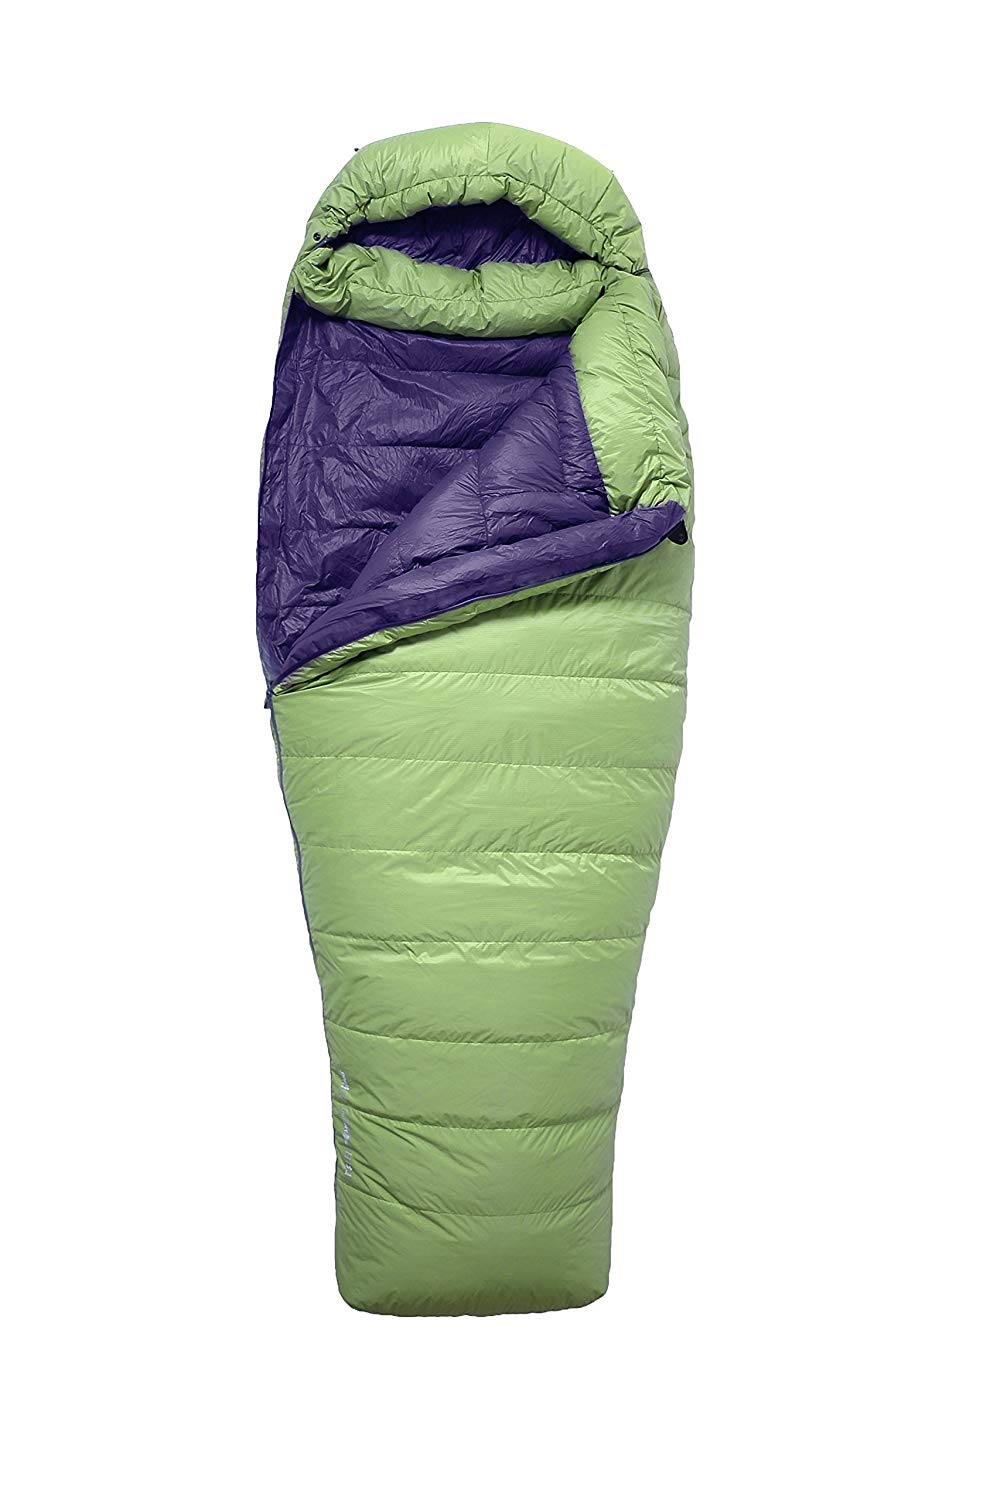 An image of Sea to Summit Latitude LT II Women's Sleeping Bag